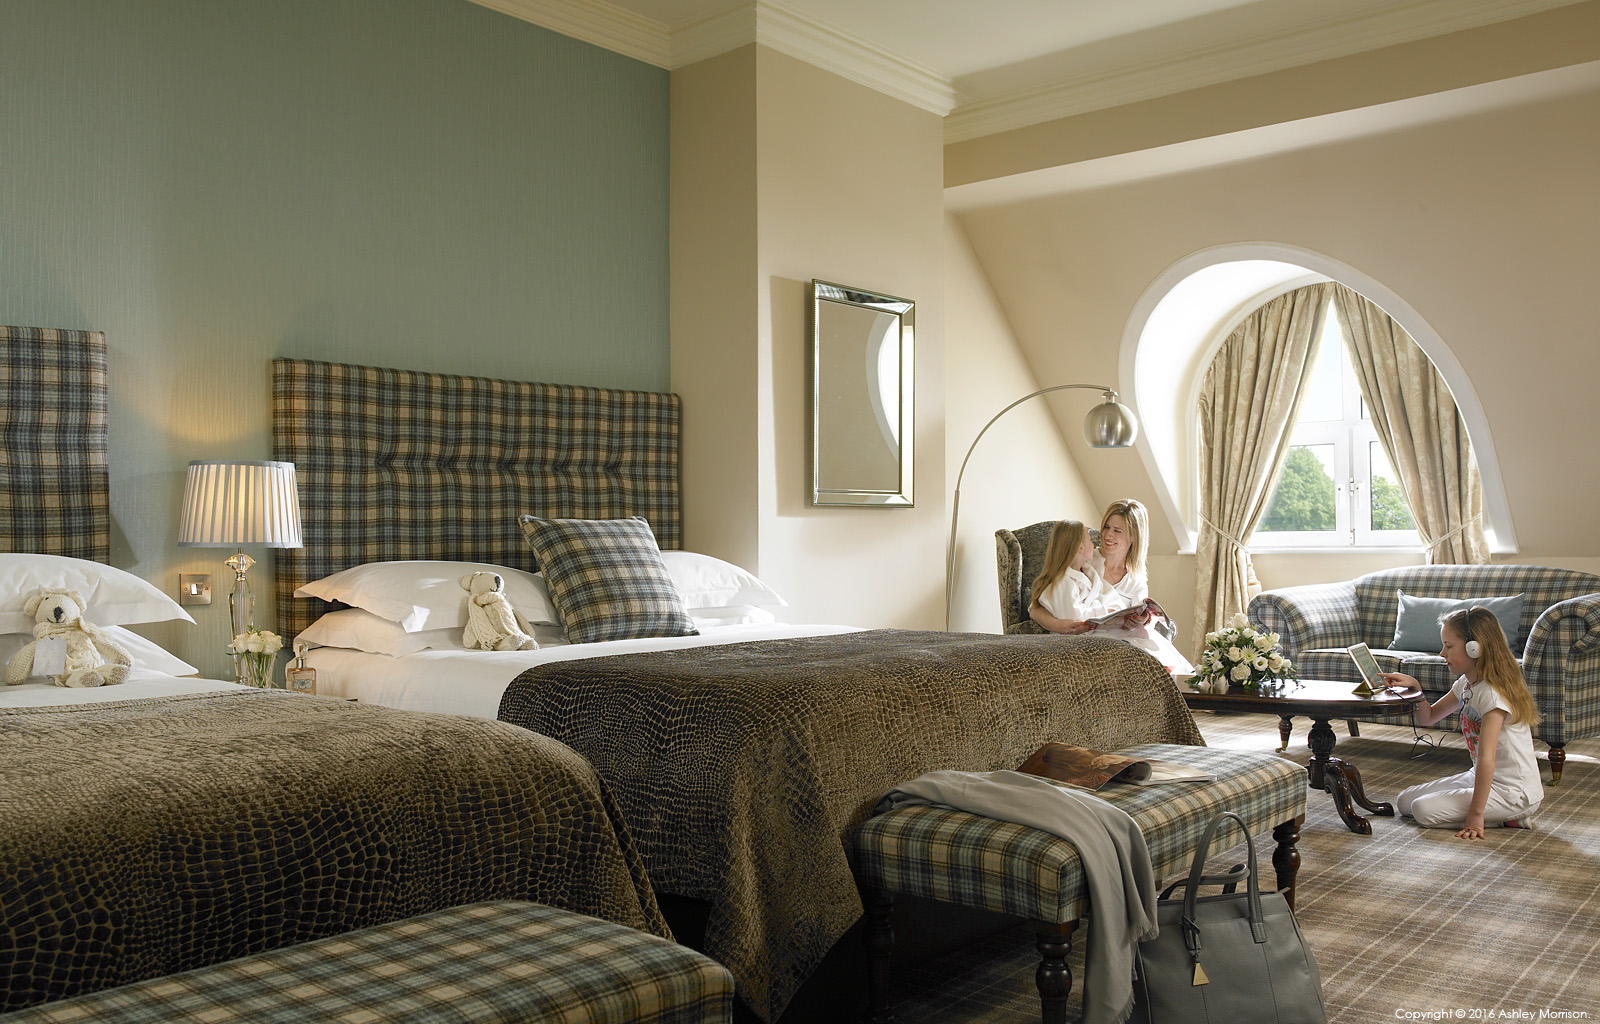 The Deluxe family room at Killarney Park Hotel in the Irish County of Kerry